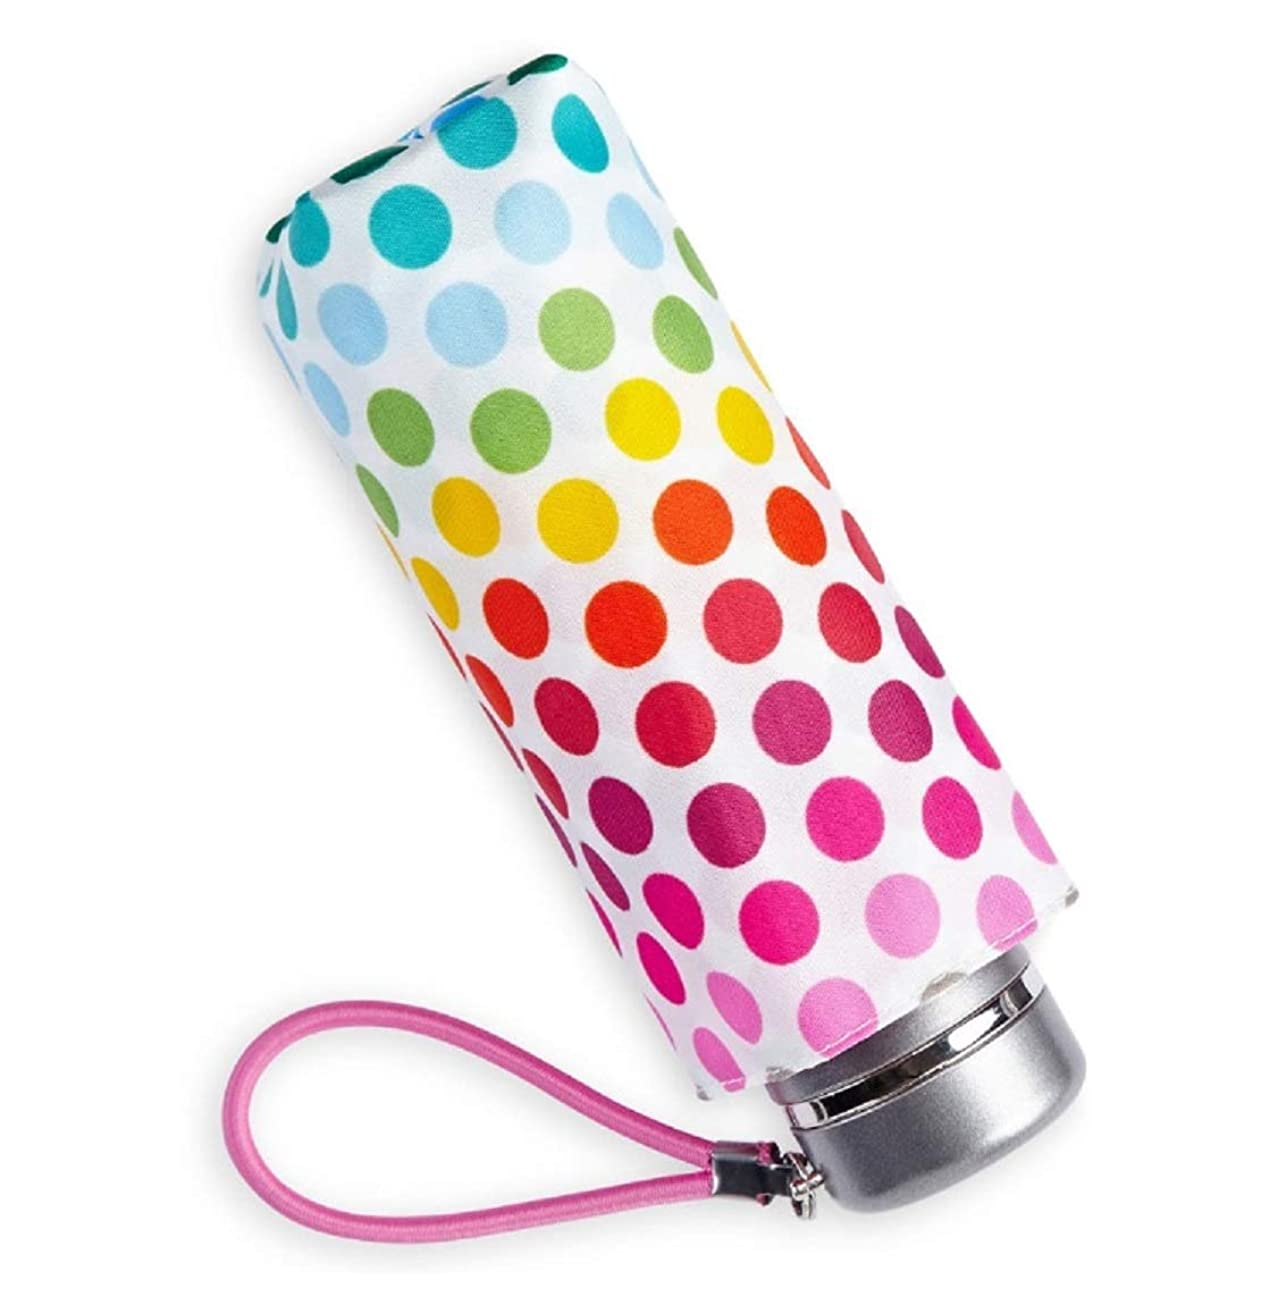 Totes Micro Mini Manual Compact Umbrella, NeverWet technology (White With colorful Polka Dots)